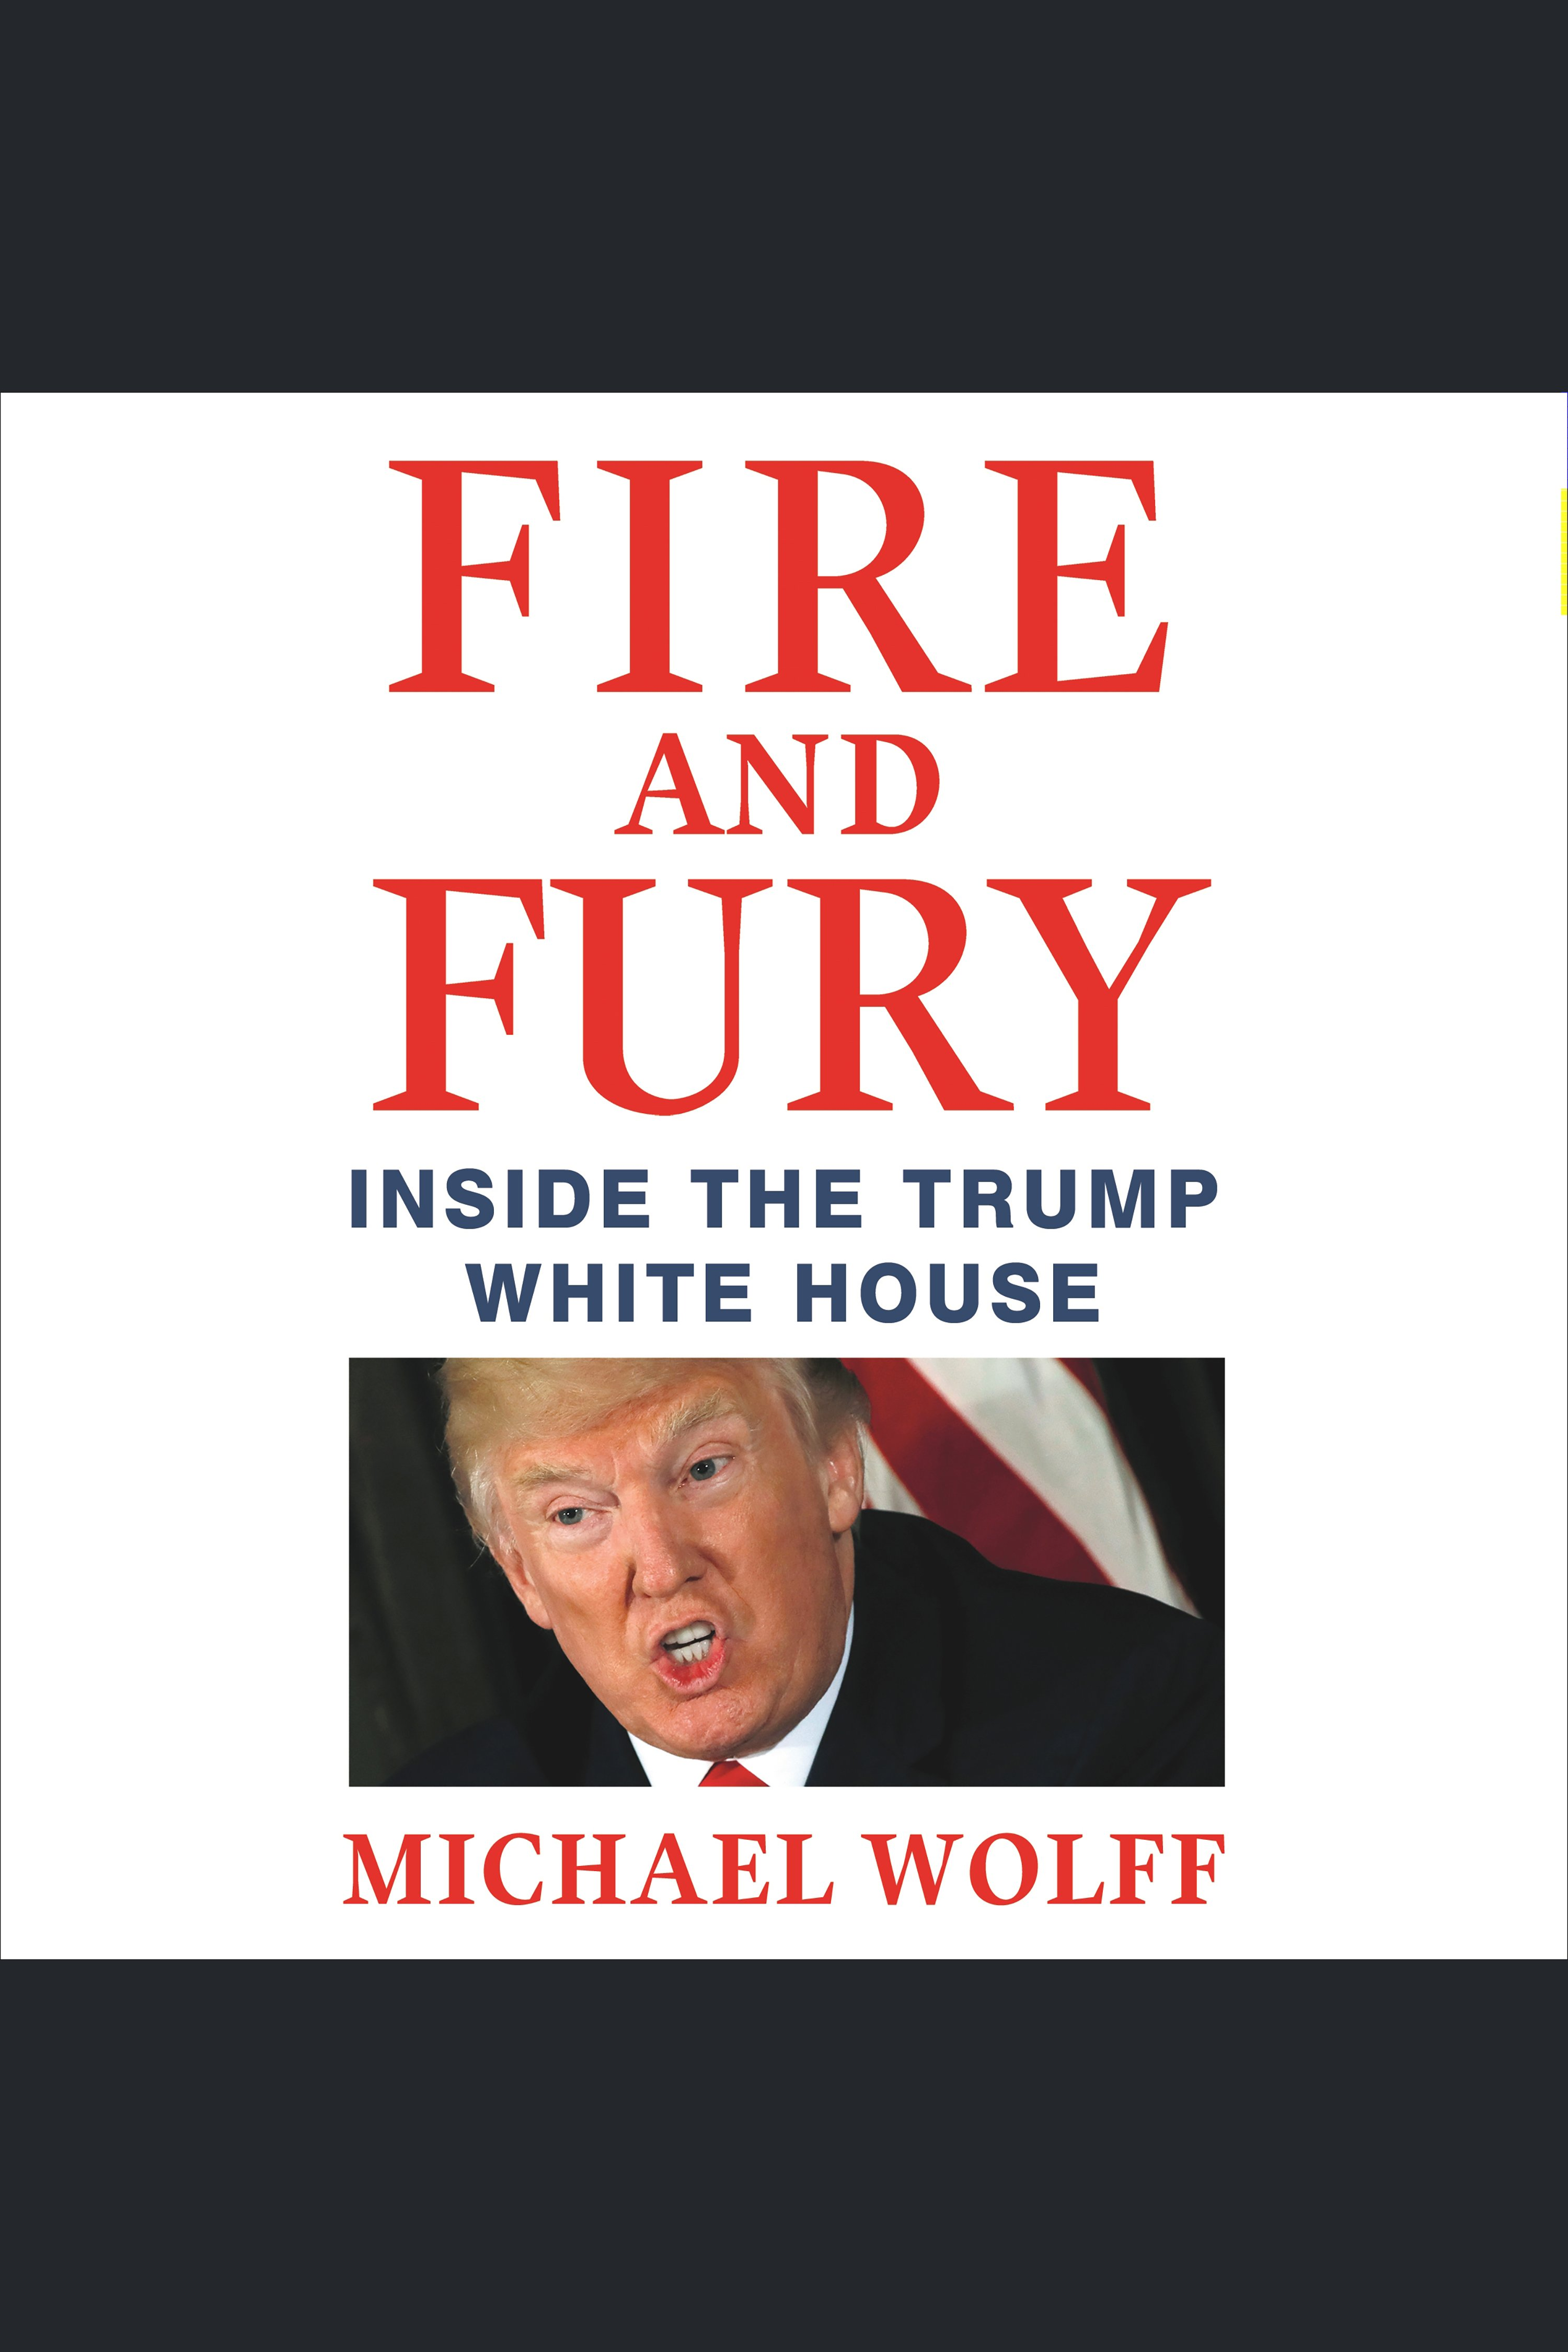 Fire and Fury [EAUDIOBOOK] Inside the Trump White House